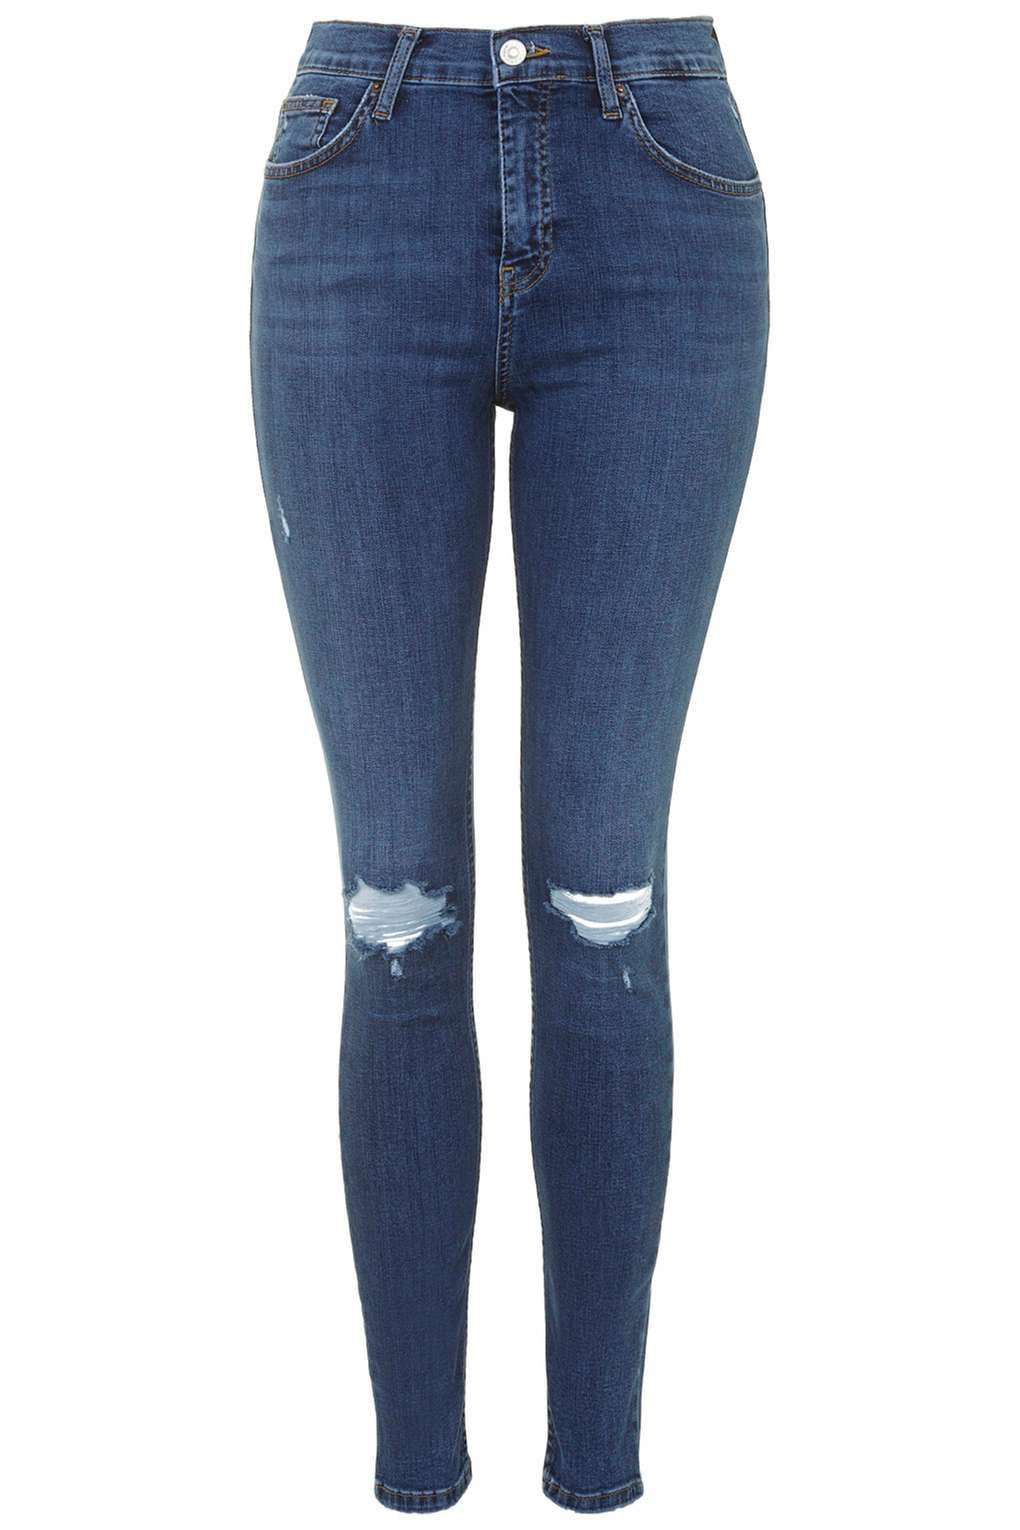 2085e4ddbfd MOTO Mid Blue Ripped Jamie Jeans in 2019 | Fashion | Ripped skinny ...